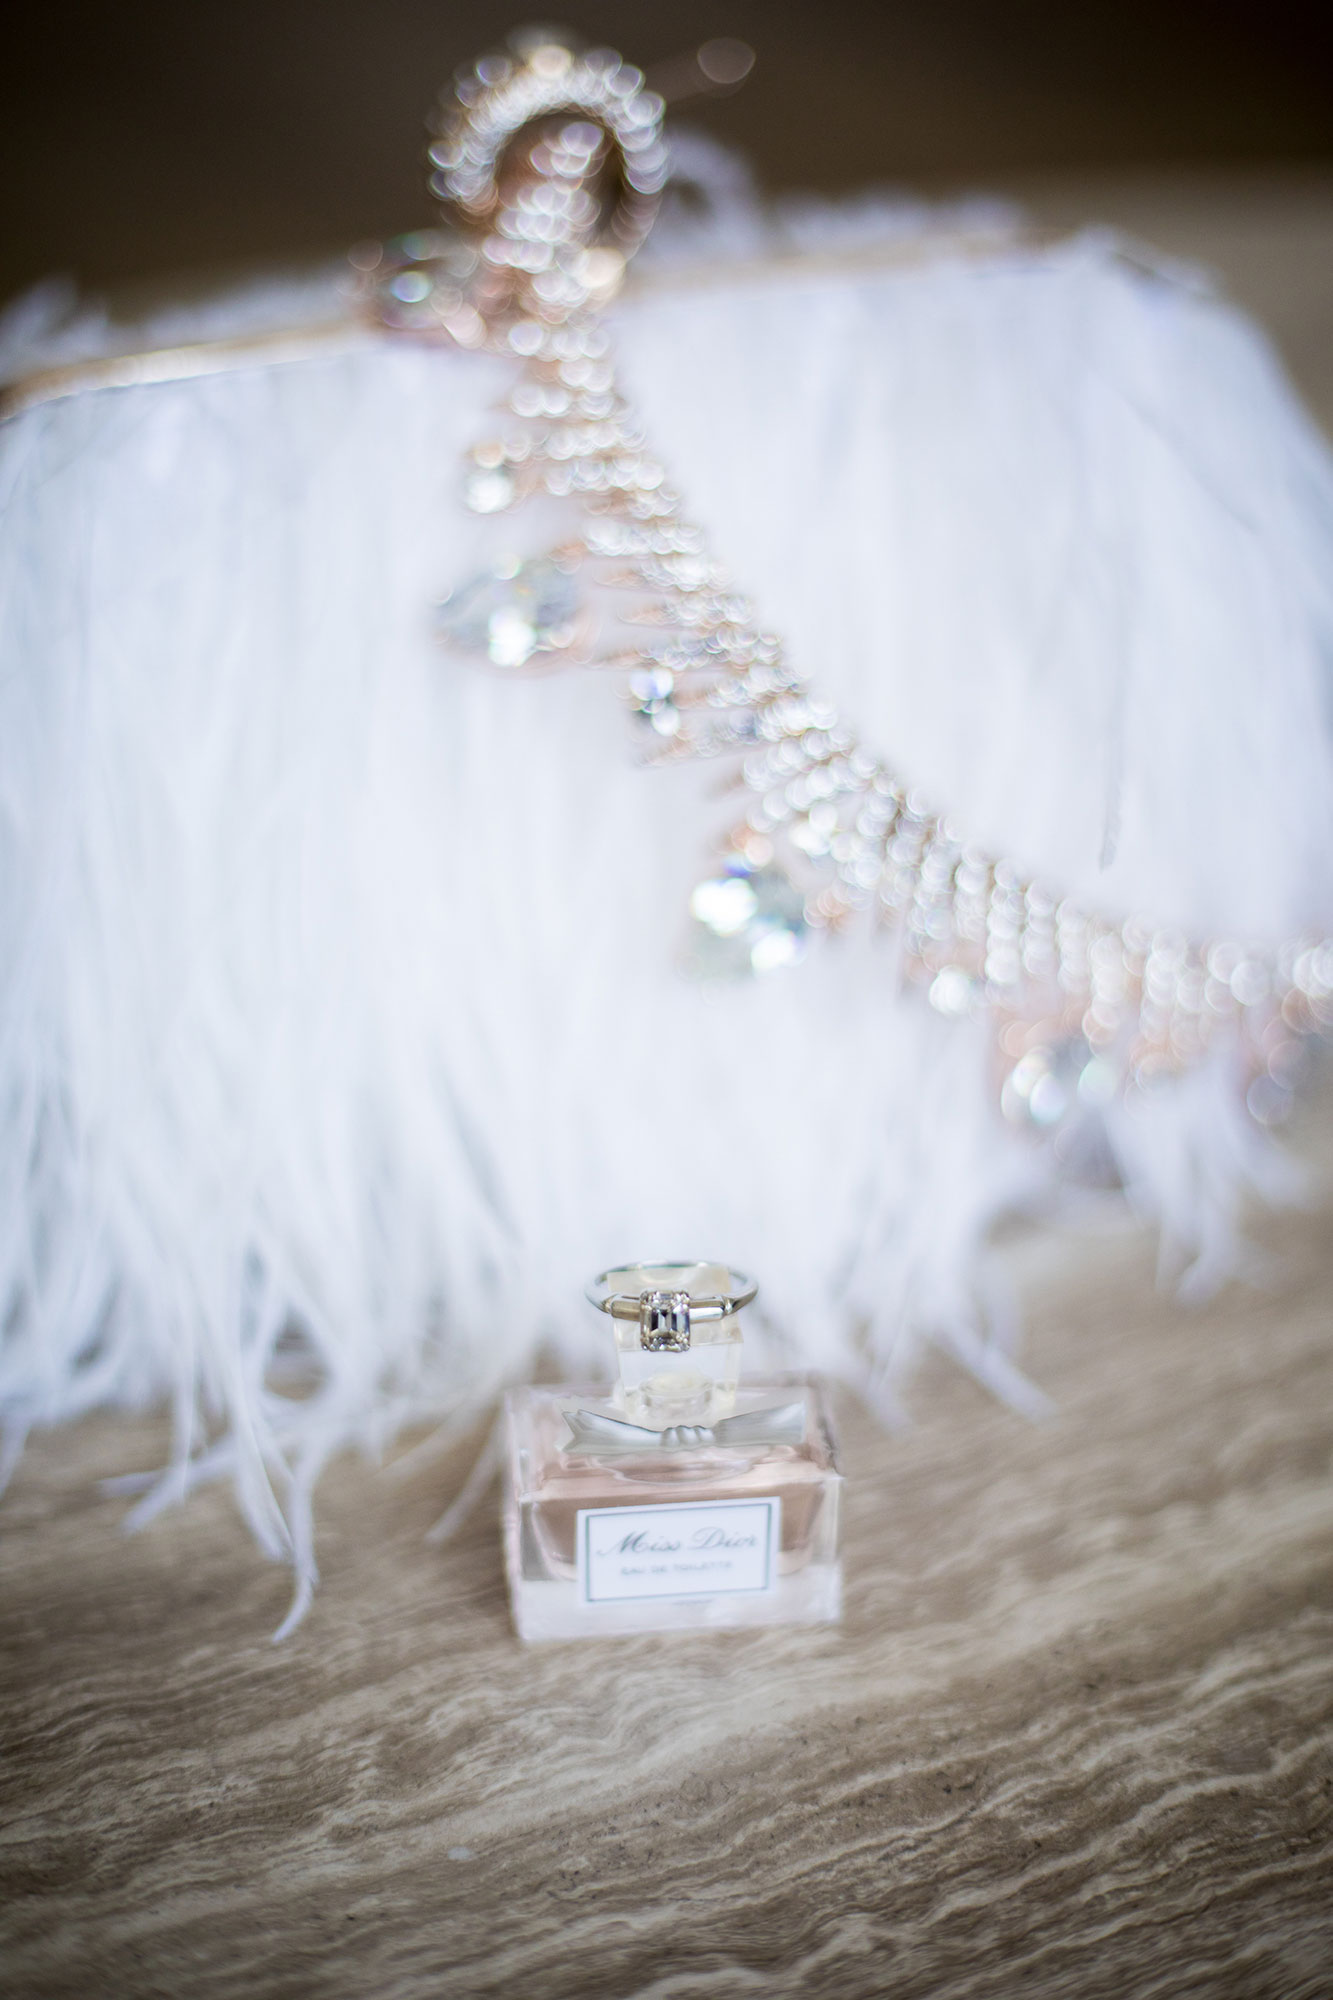 perfume and crystal crown draped over fur fringe clutch before wedding los angeles california crystal lily photography